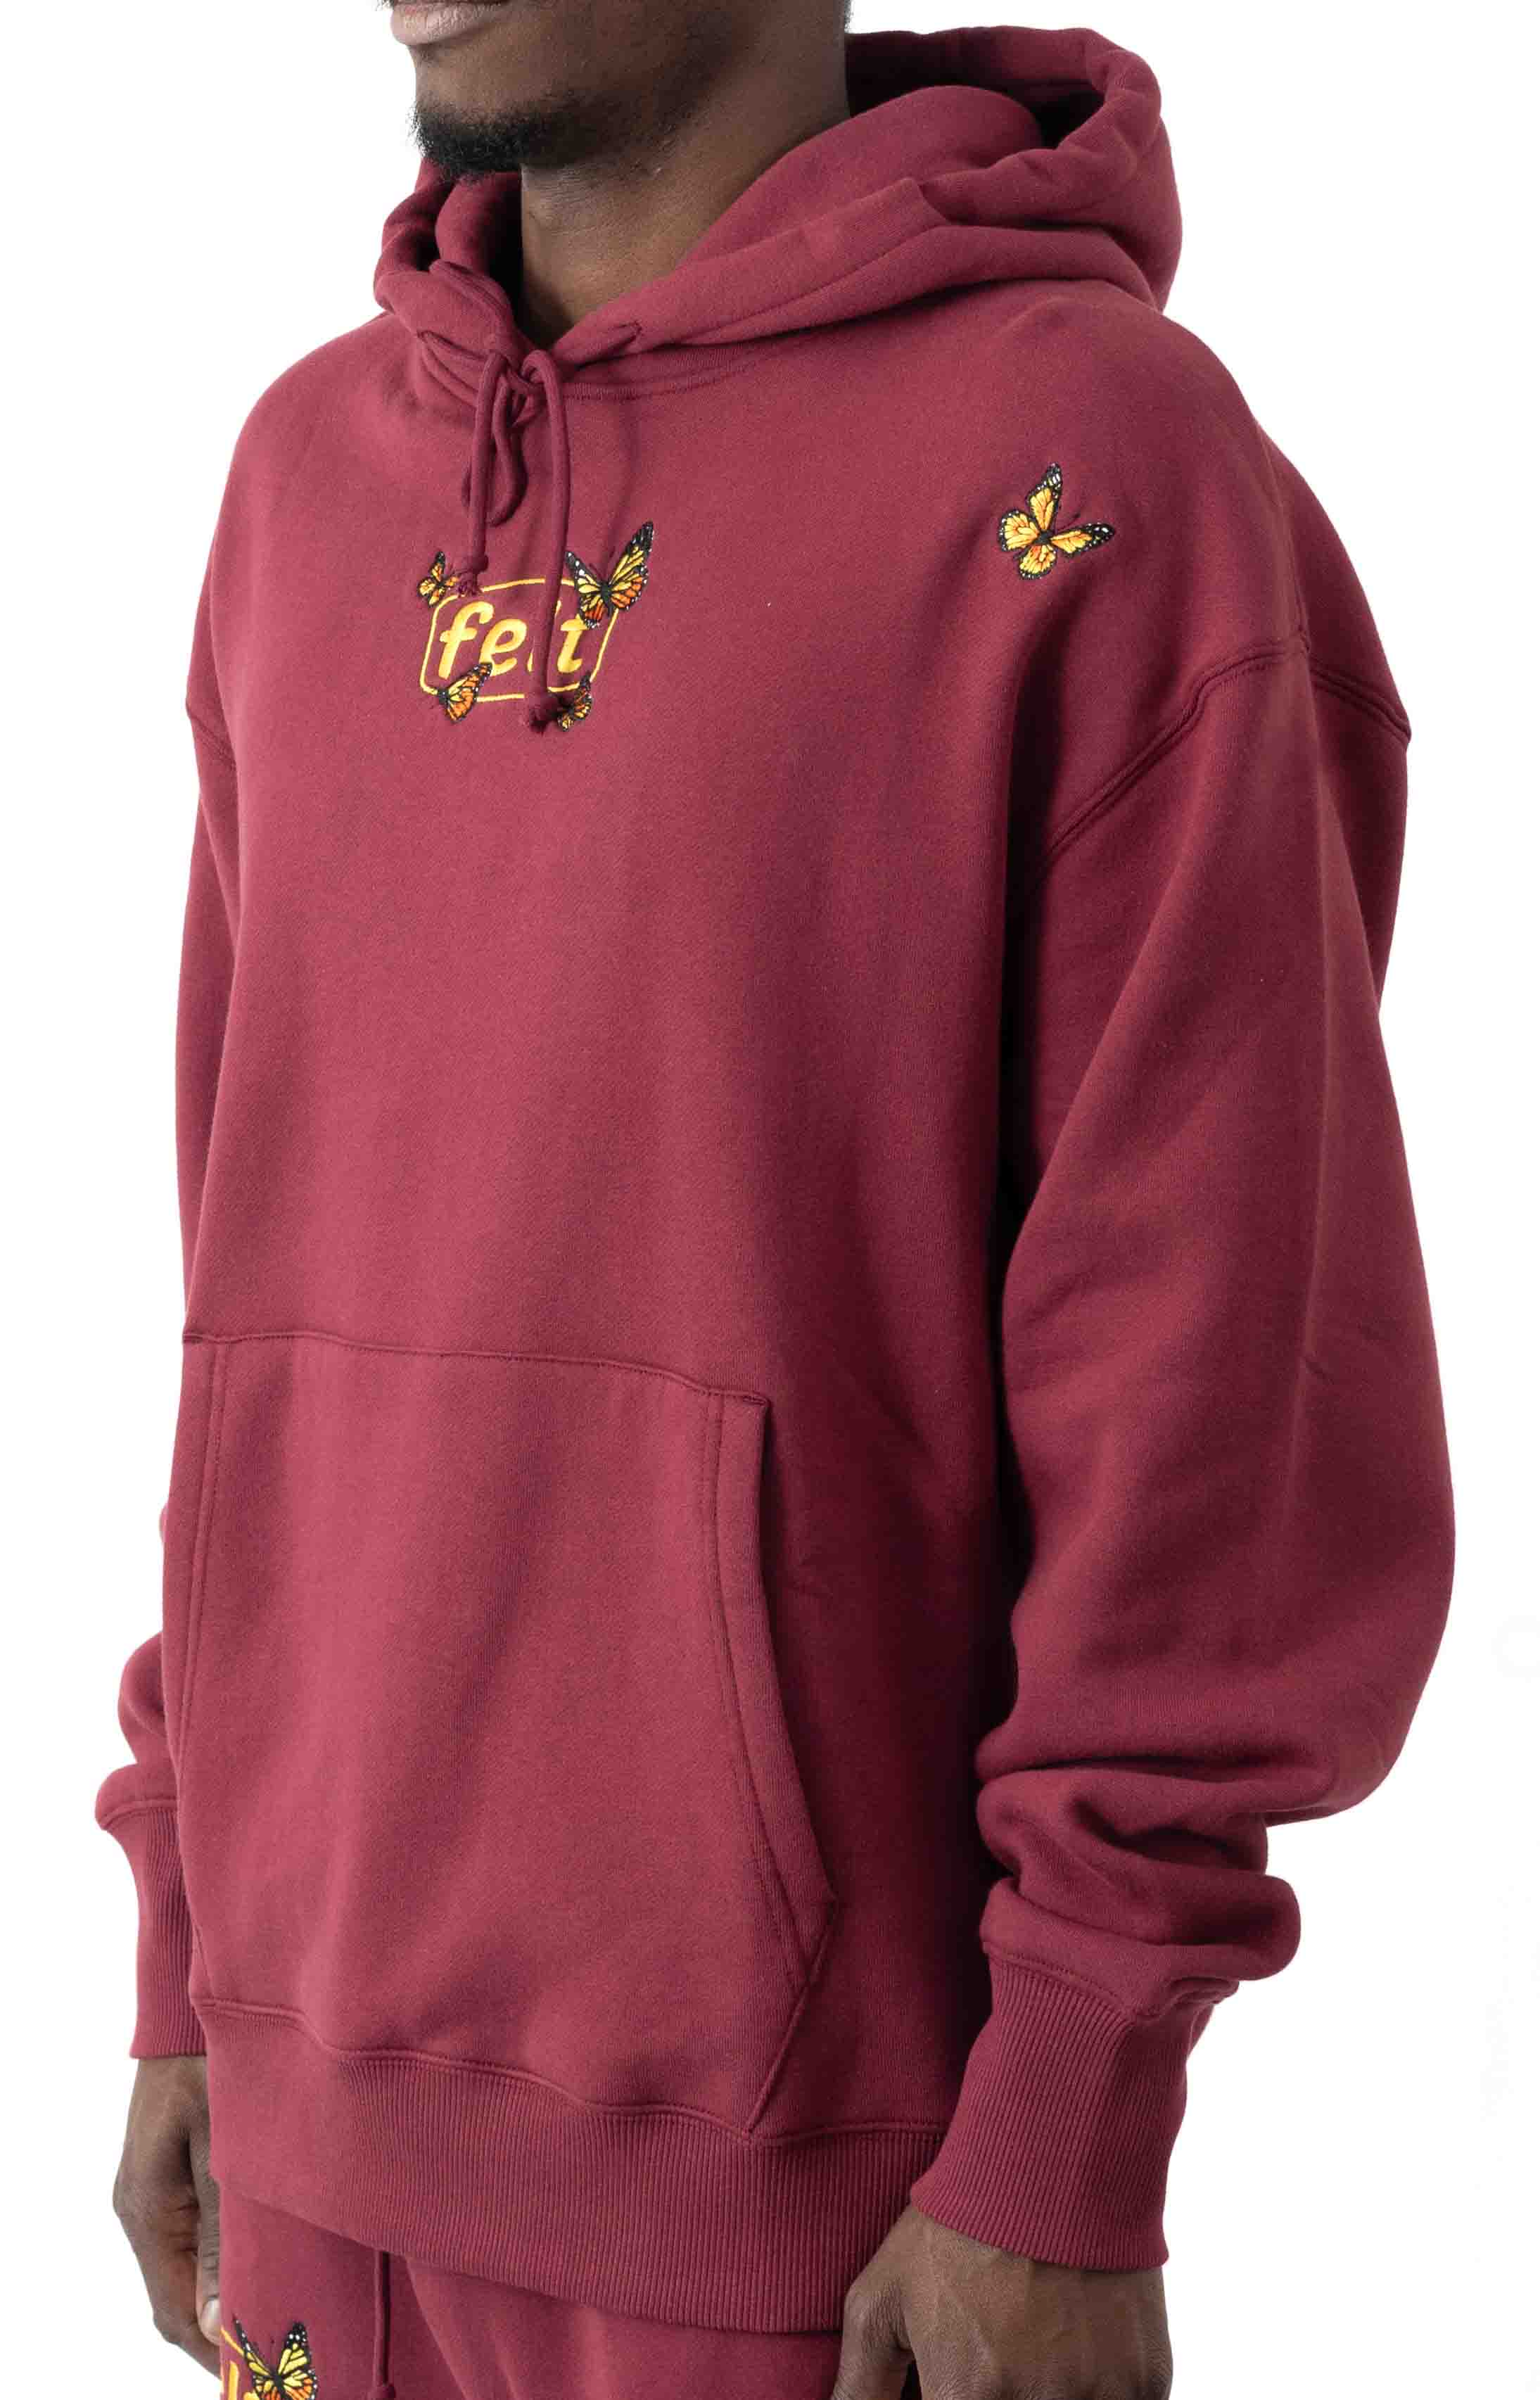 Butterfly Embroidered Pullover Hoodie - Burgundy  2